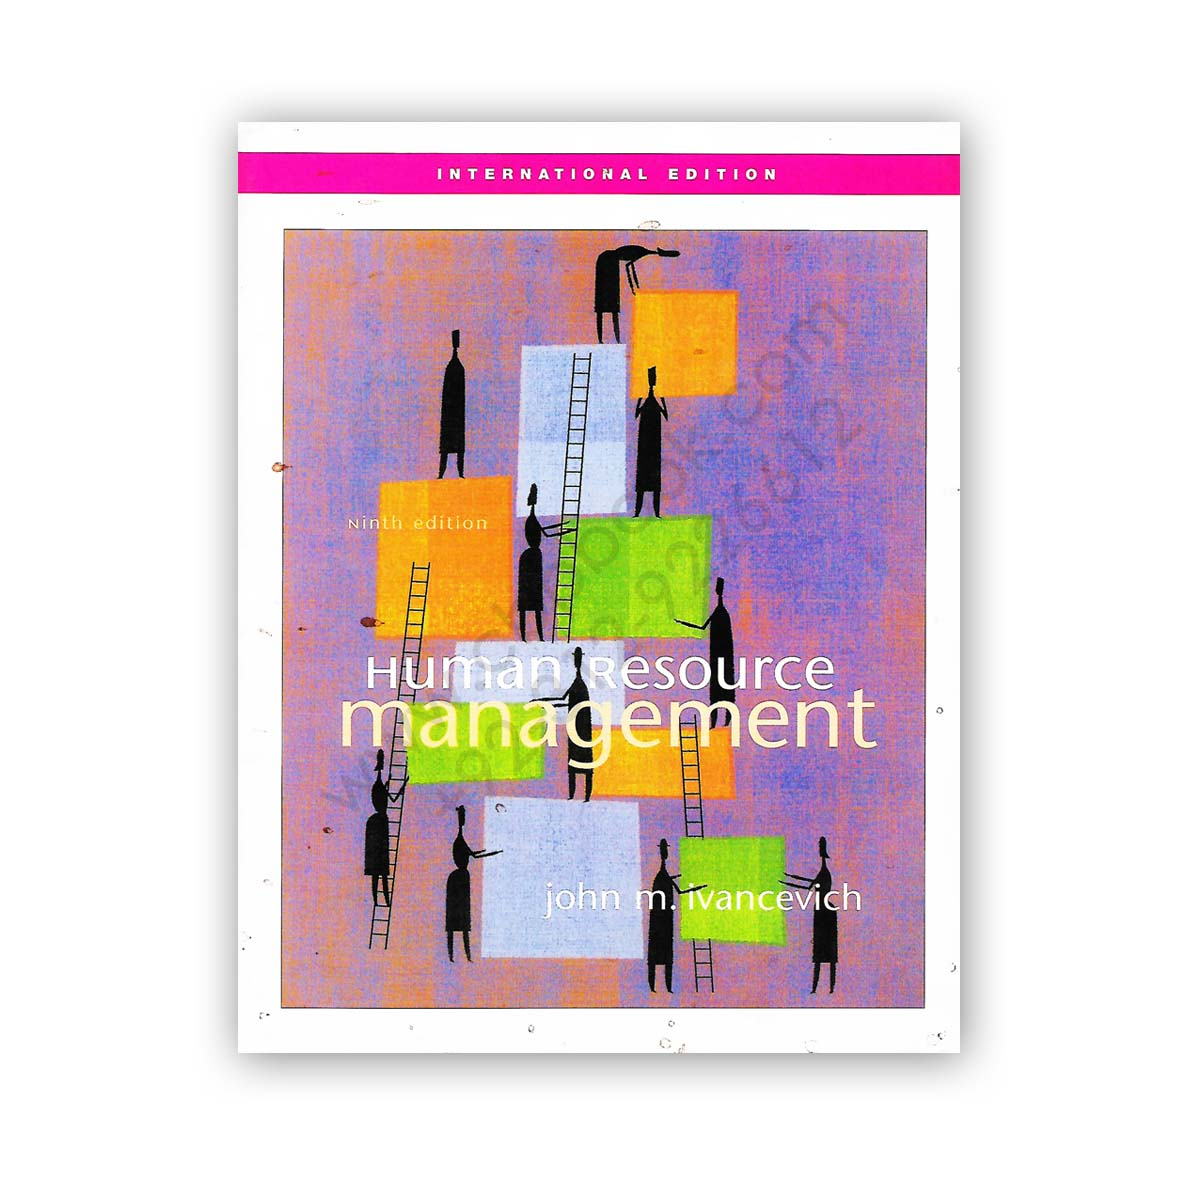 human resource management john m ivancevich 9th edition - mcgraw hill